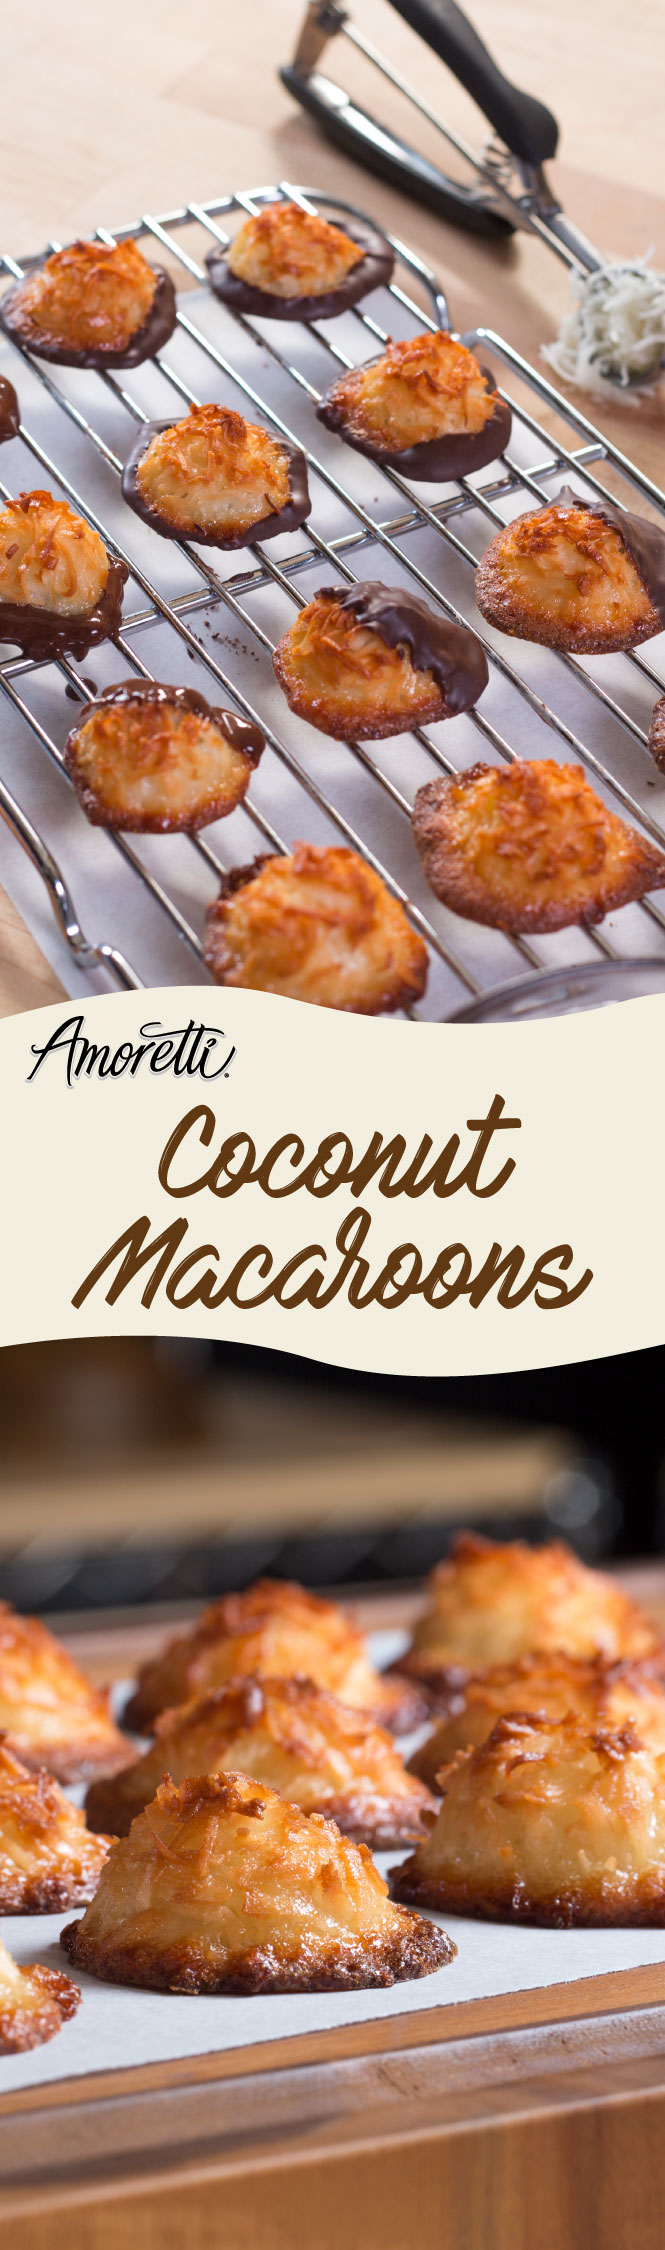 Coconut macaroons are an ideal tea-time dessert!